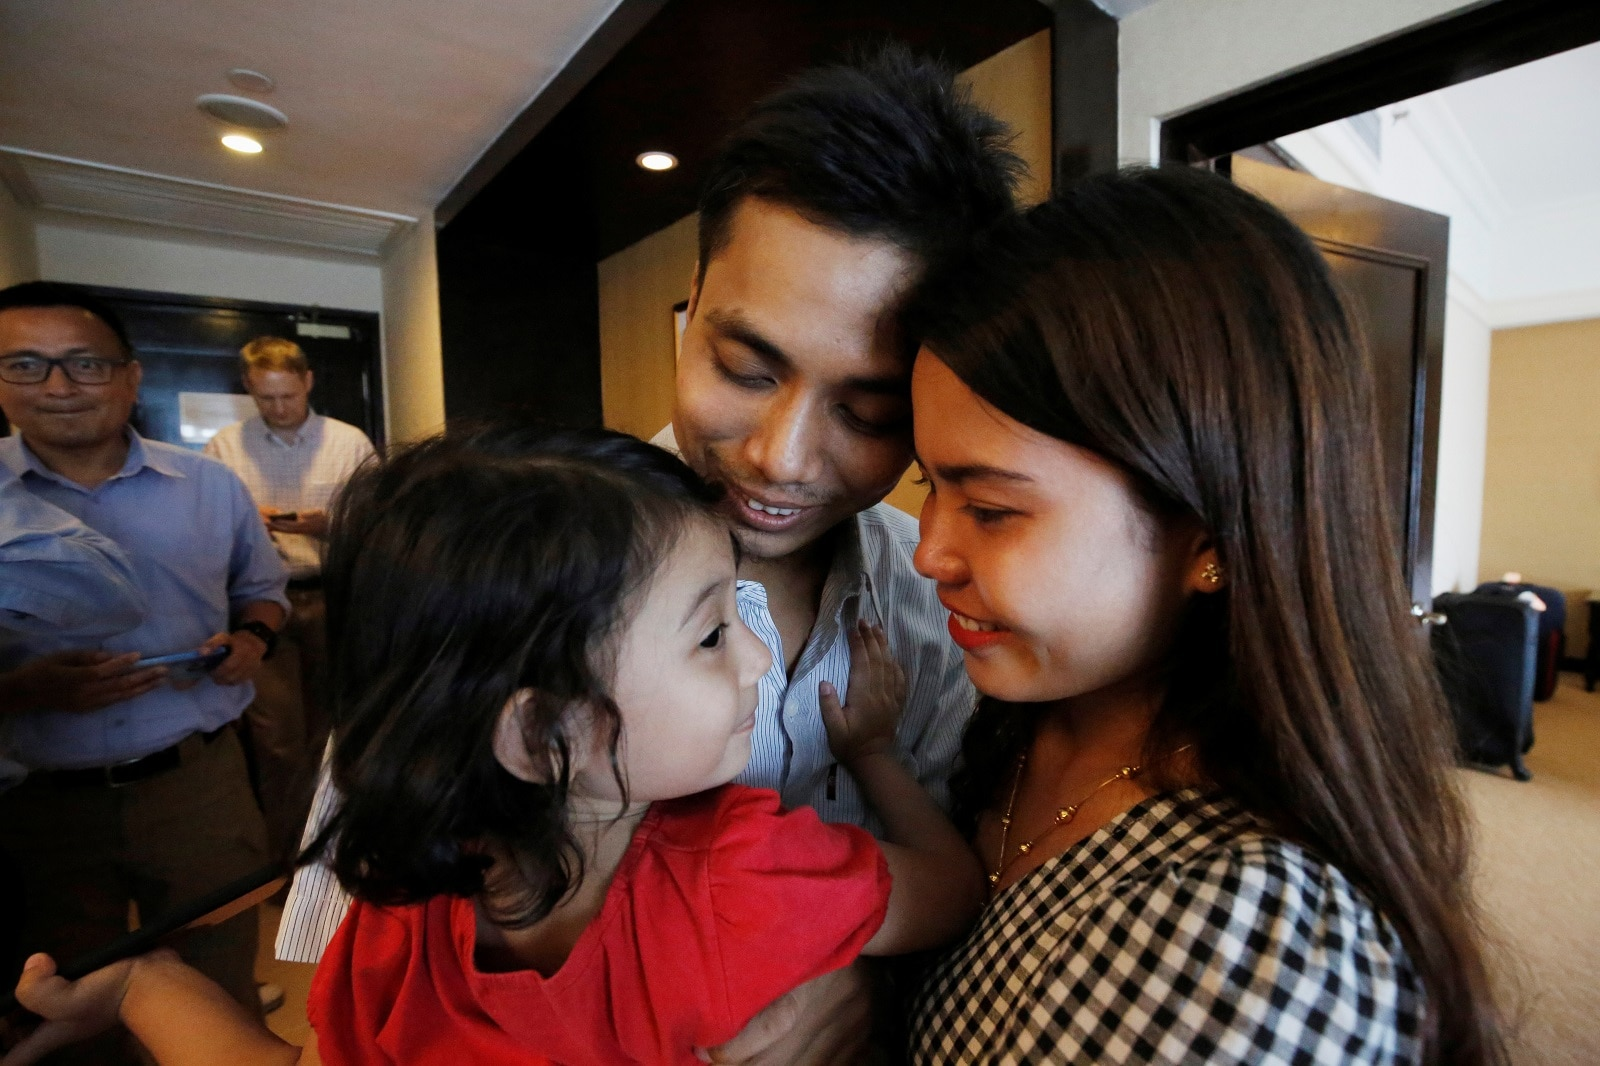 Reuters reporter Kyaw Soe Oo celebrates with his wife and daughter after being freed from prison in Yangon, Myanmar, May 7, 2019. REUTERS/Ann Wang/Pool